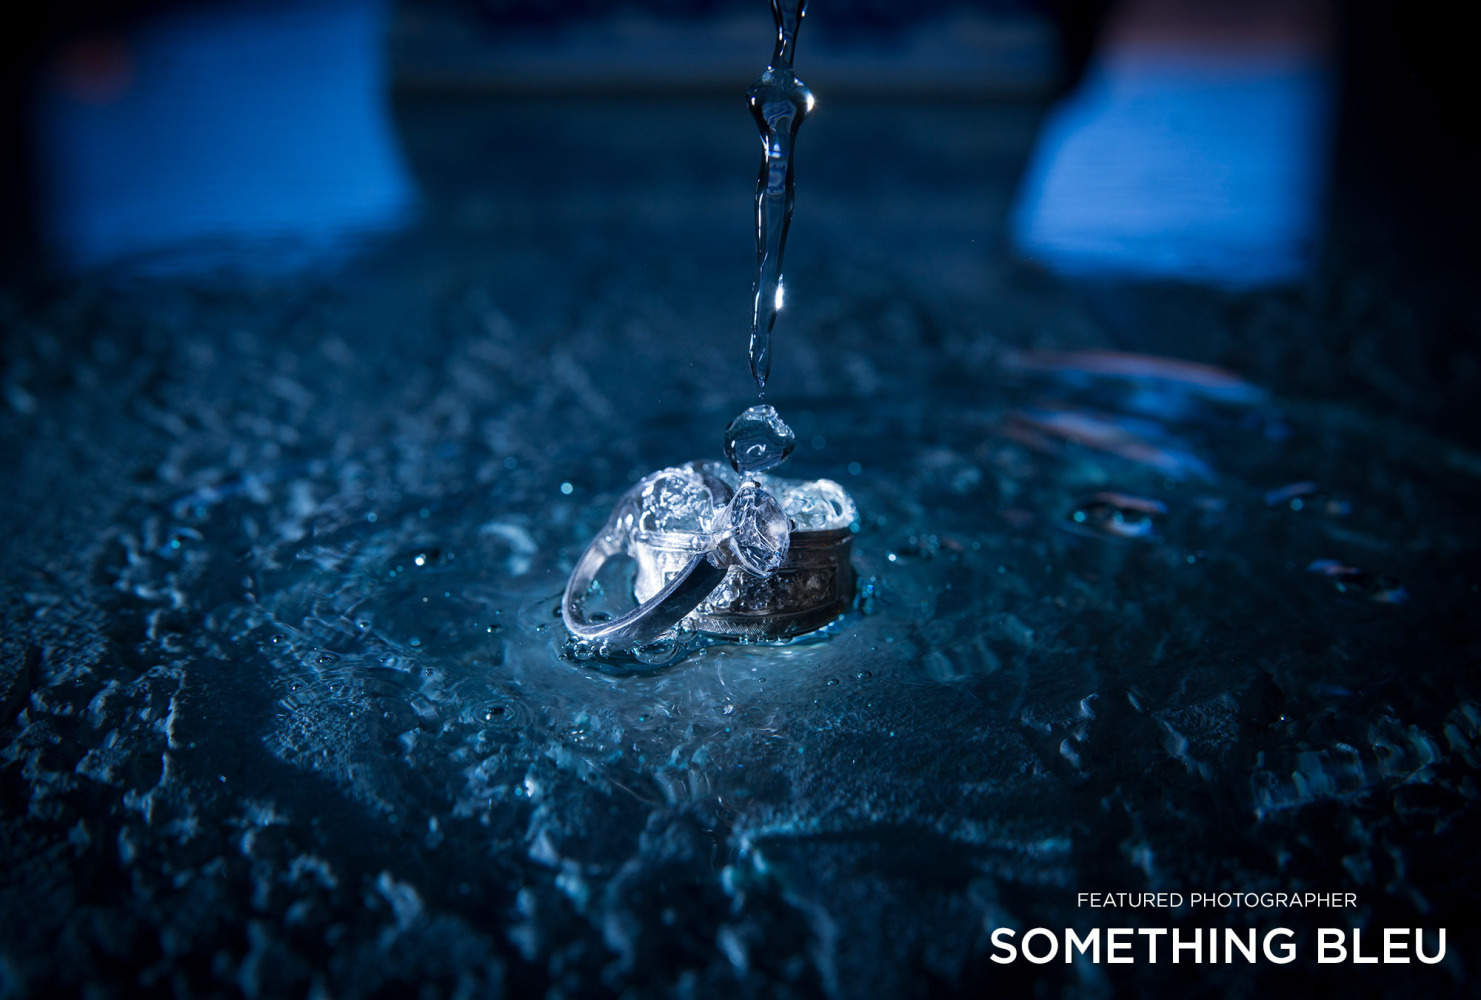 Something Bleu - Featured Photographer